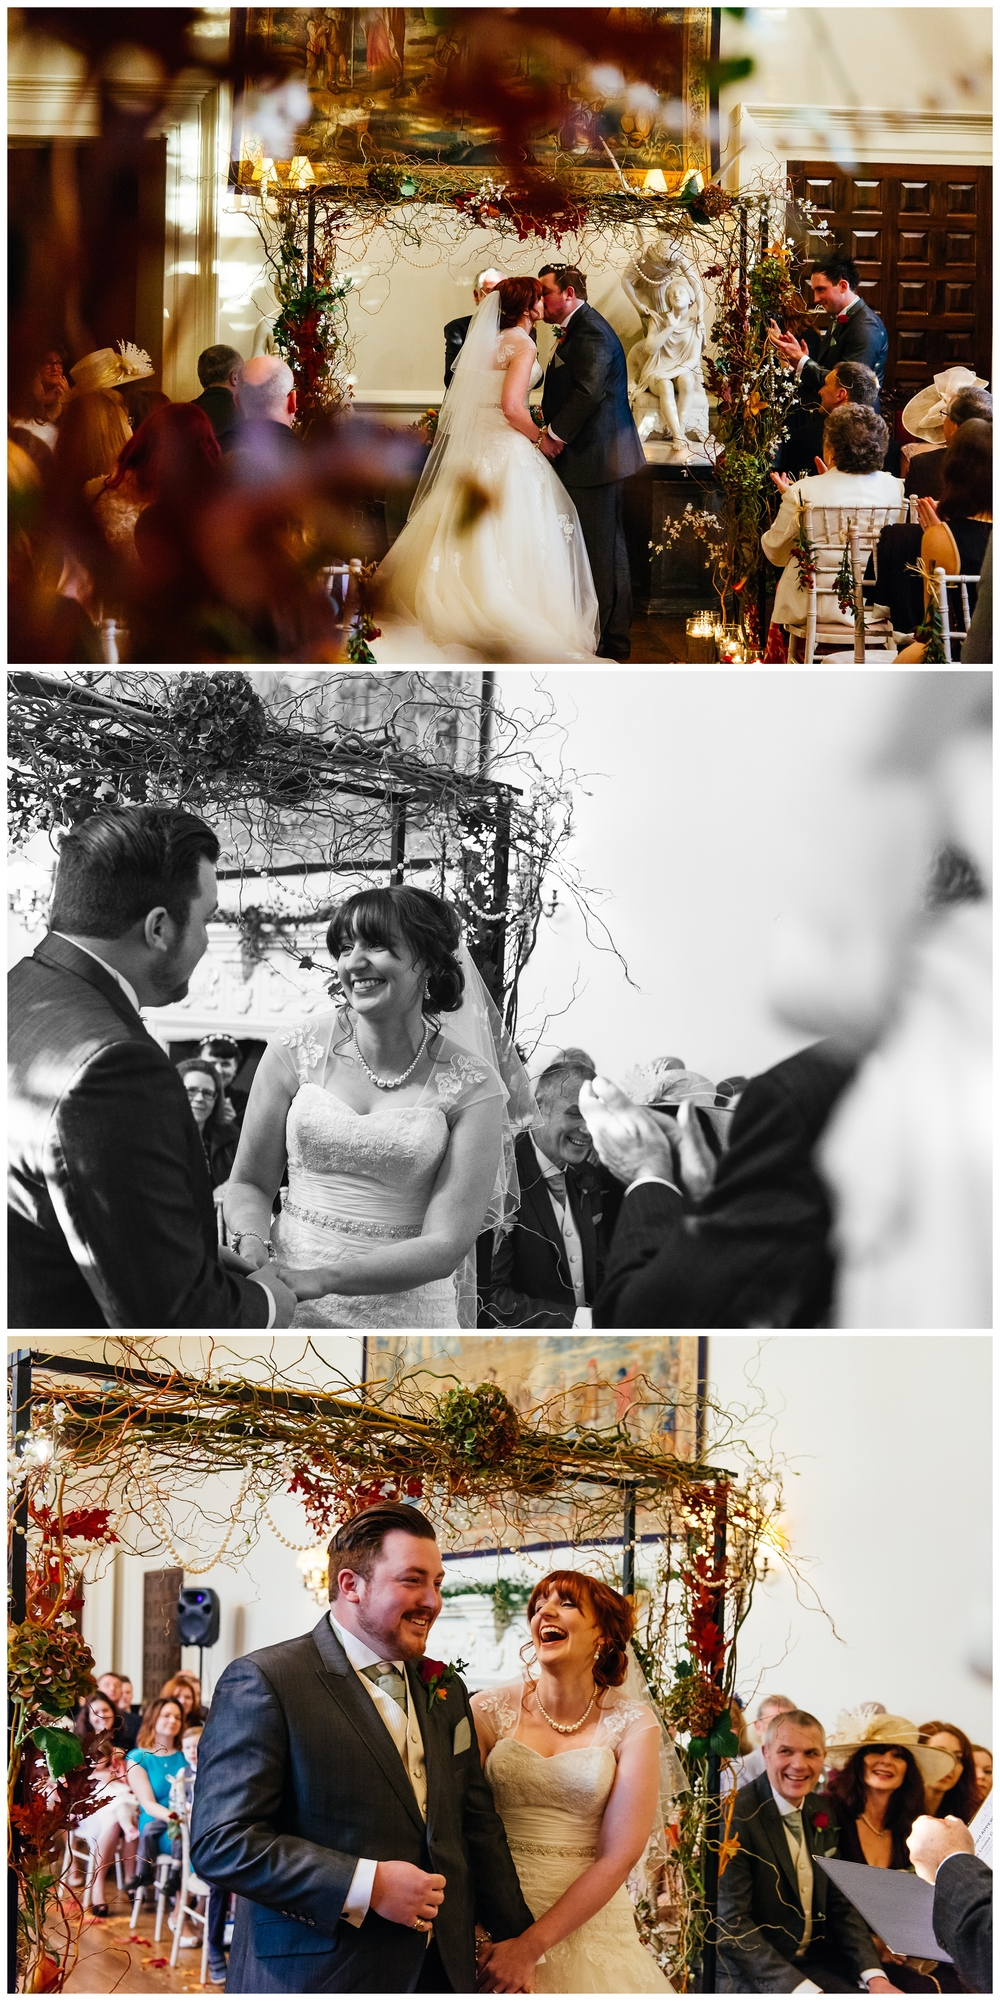 Emma&Paul-Elmore-Court-Winter-Wedding-Nikki-Cooper-Photography_0053.jpg